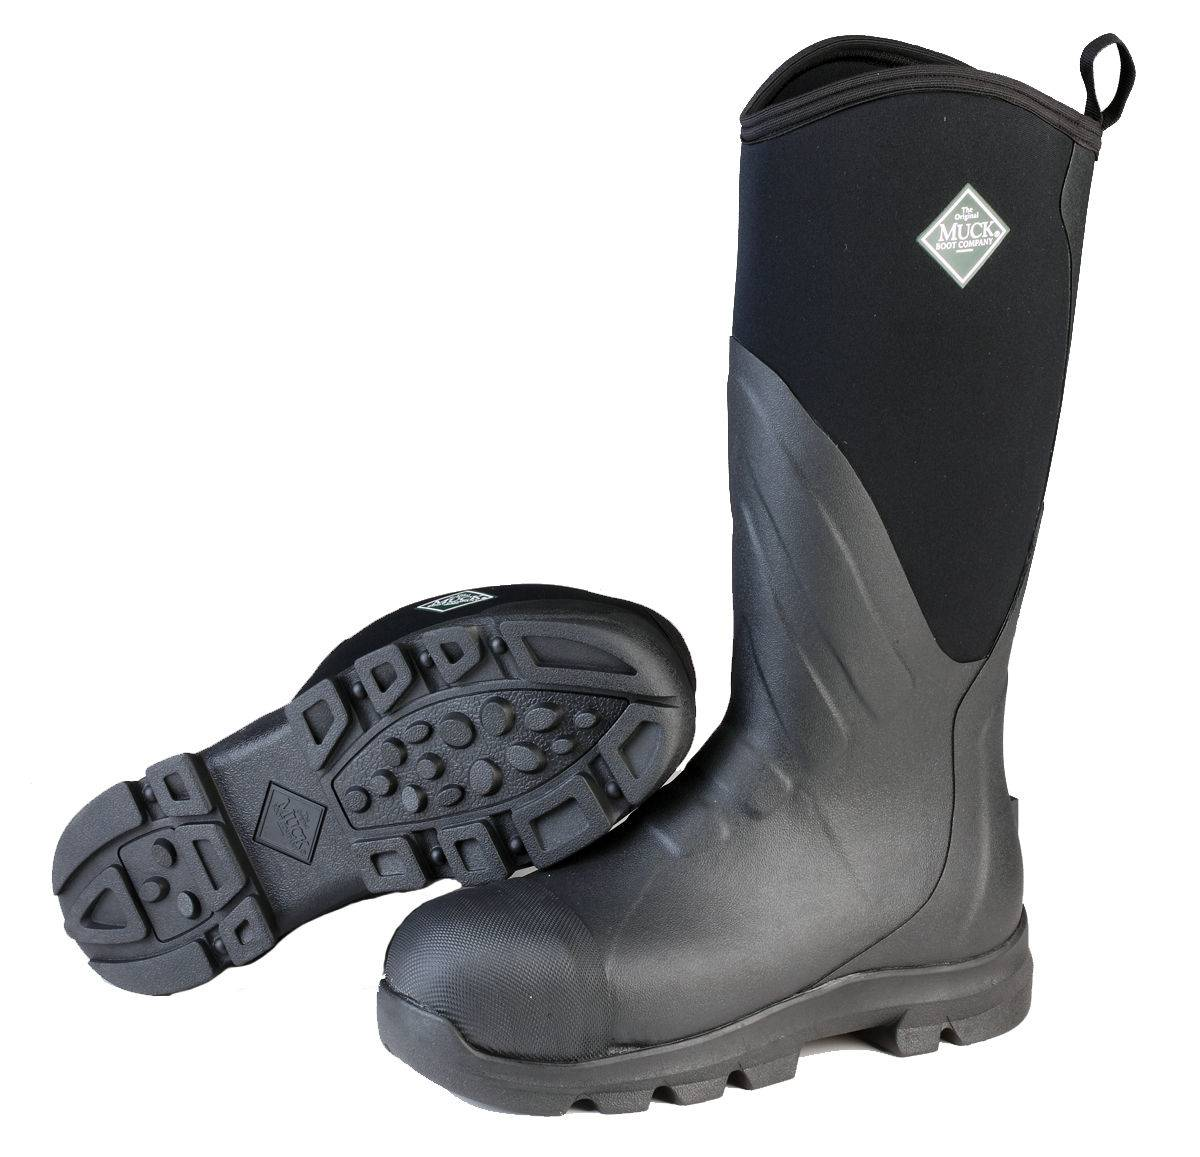 Muck Boots Mens Muck Grit Steel Toe - Black